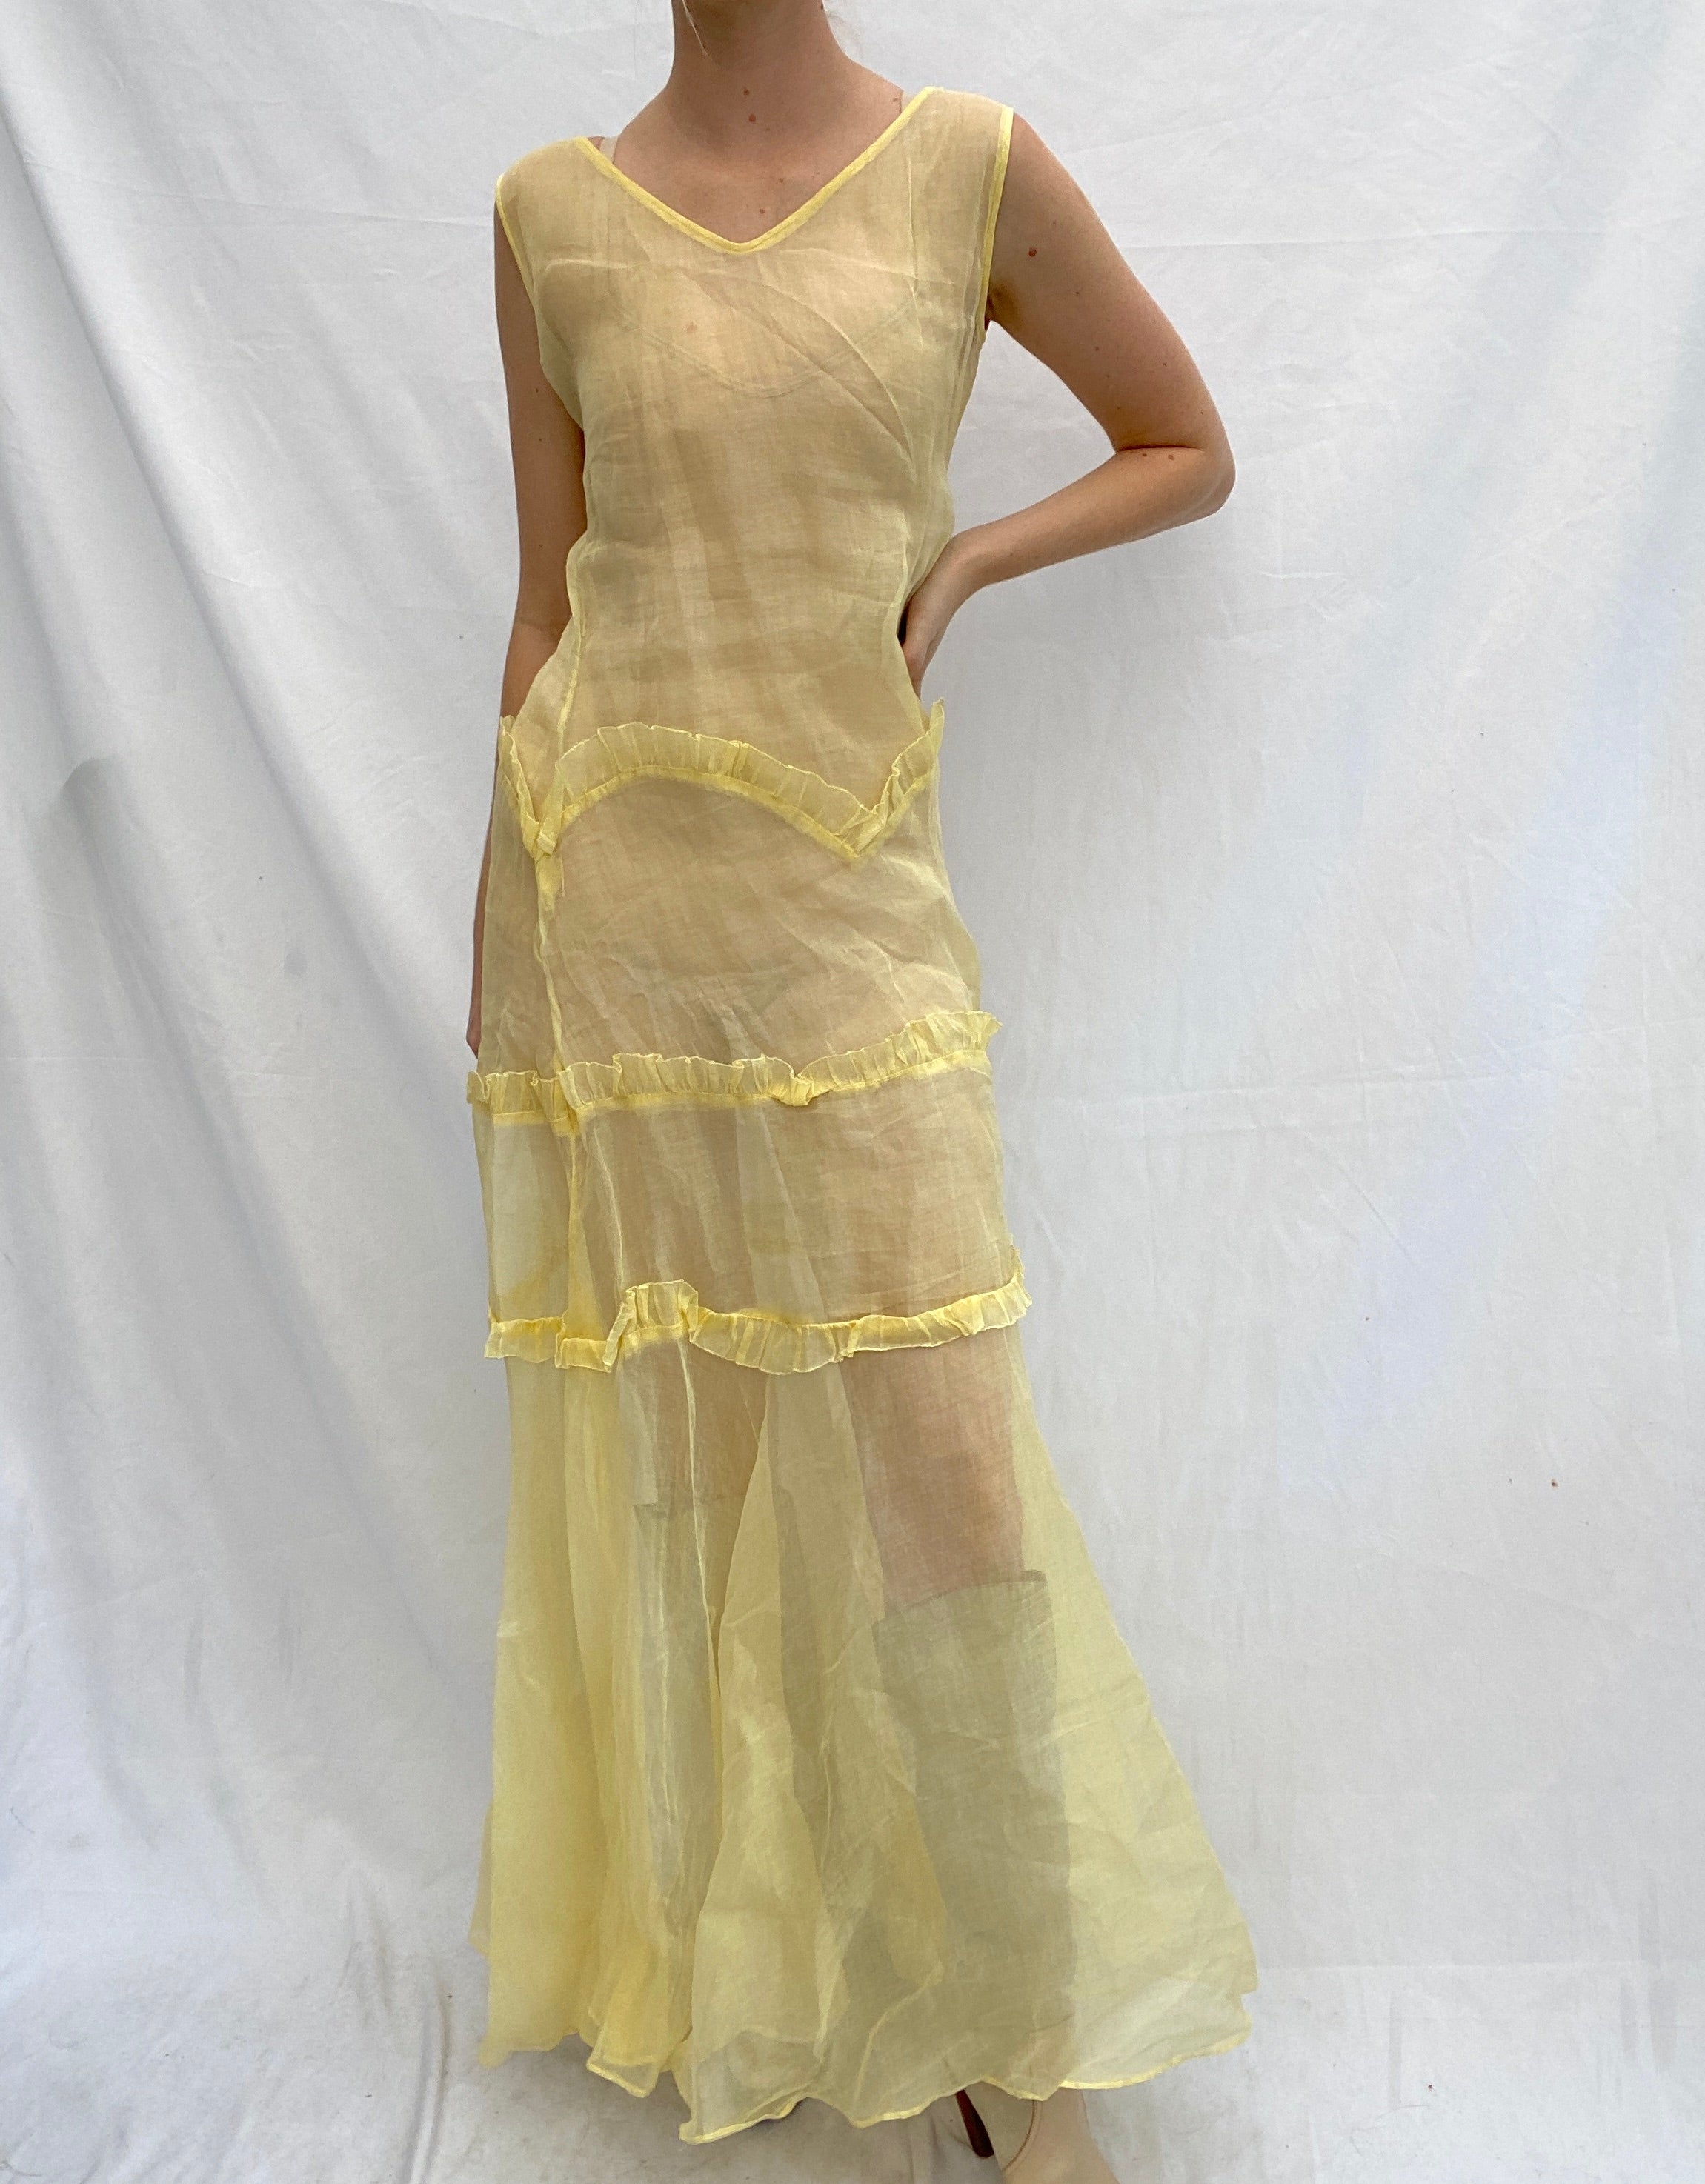 Hand Dyed Canary Yellow 1930's Organza Sleeveless Dress